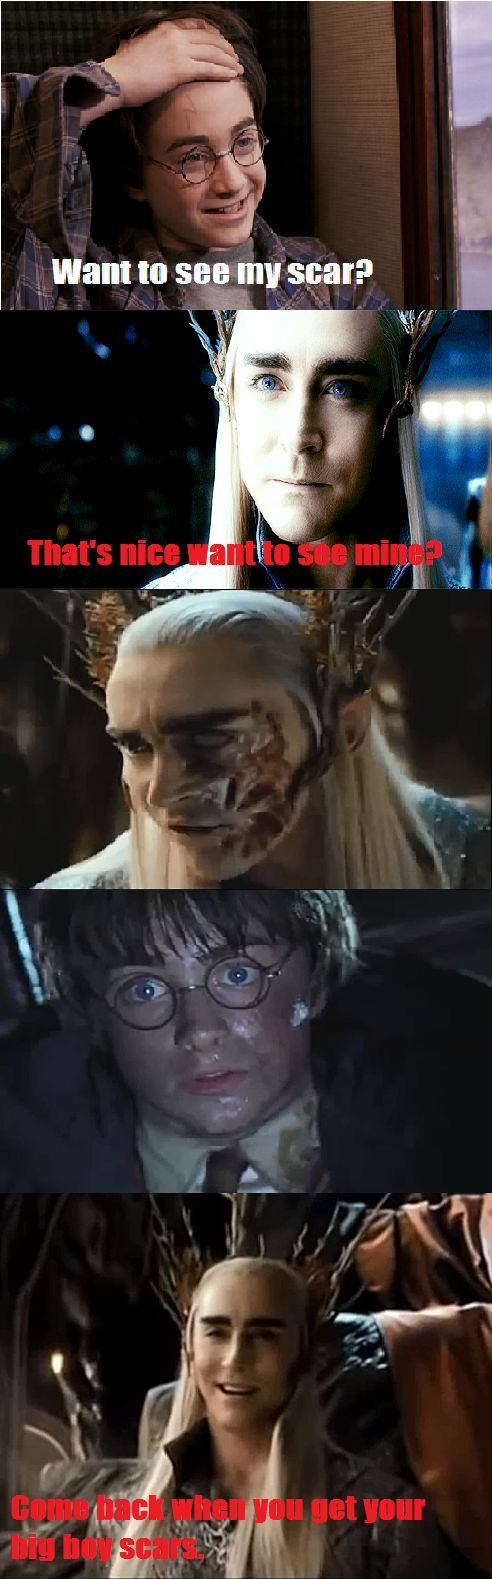 LAUGHED SO HARD!! THRANDUIL VERSUS HARRY POTTER, THRANDUIL WINS